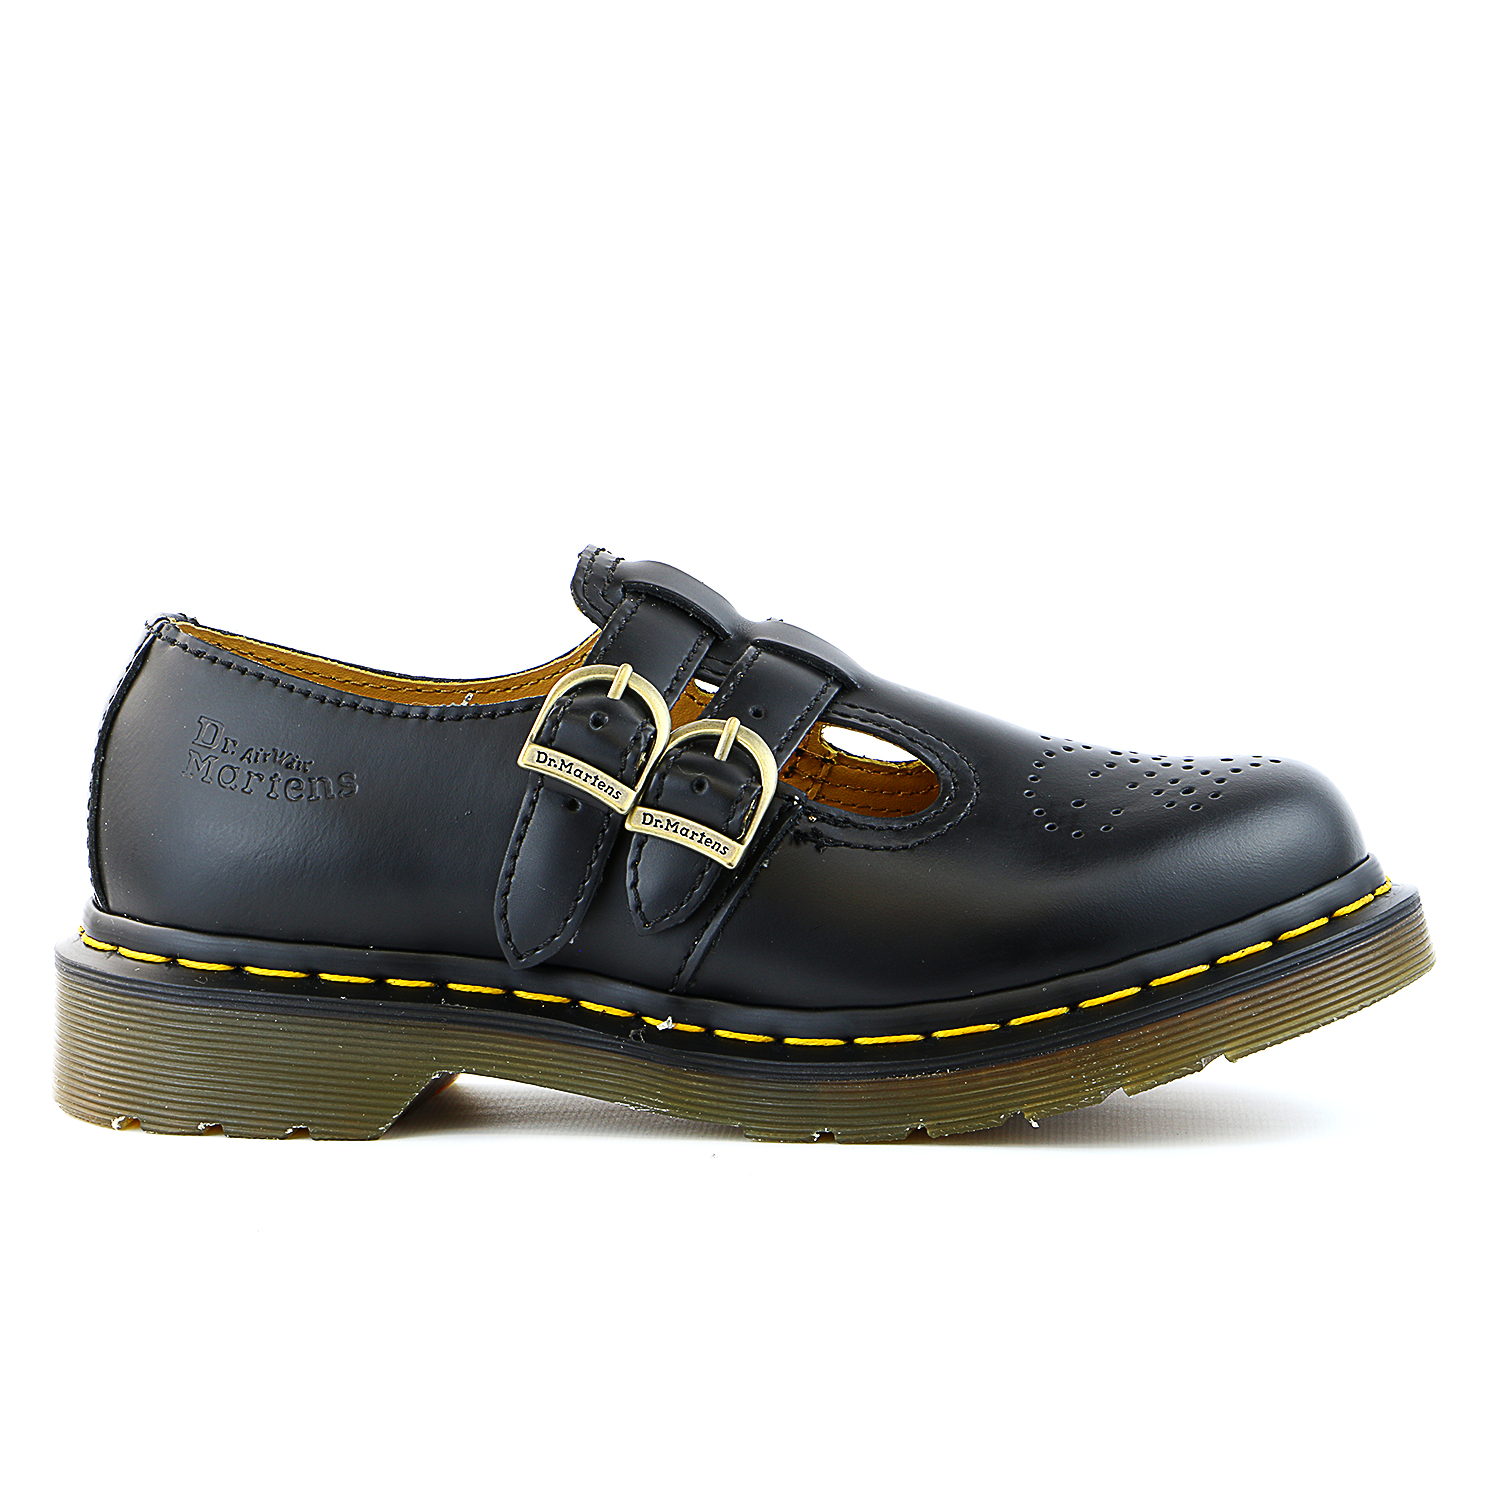 Dr. Martens 8065 Mary Jane Shoe Womens by Dr. Martens